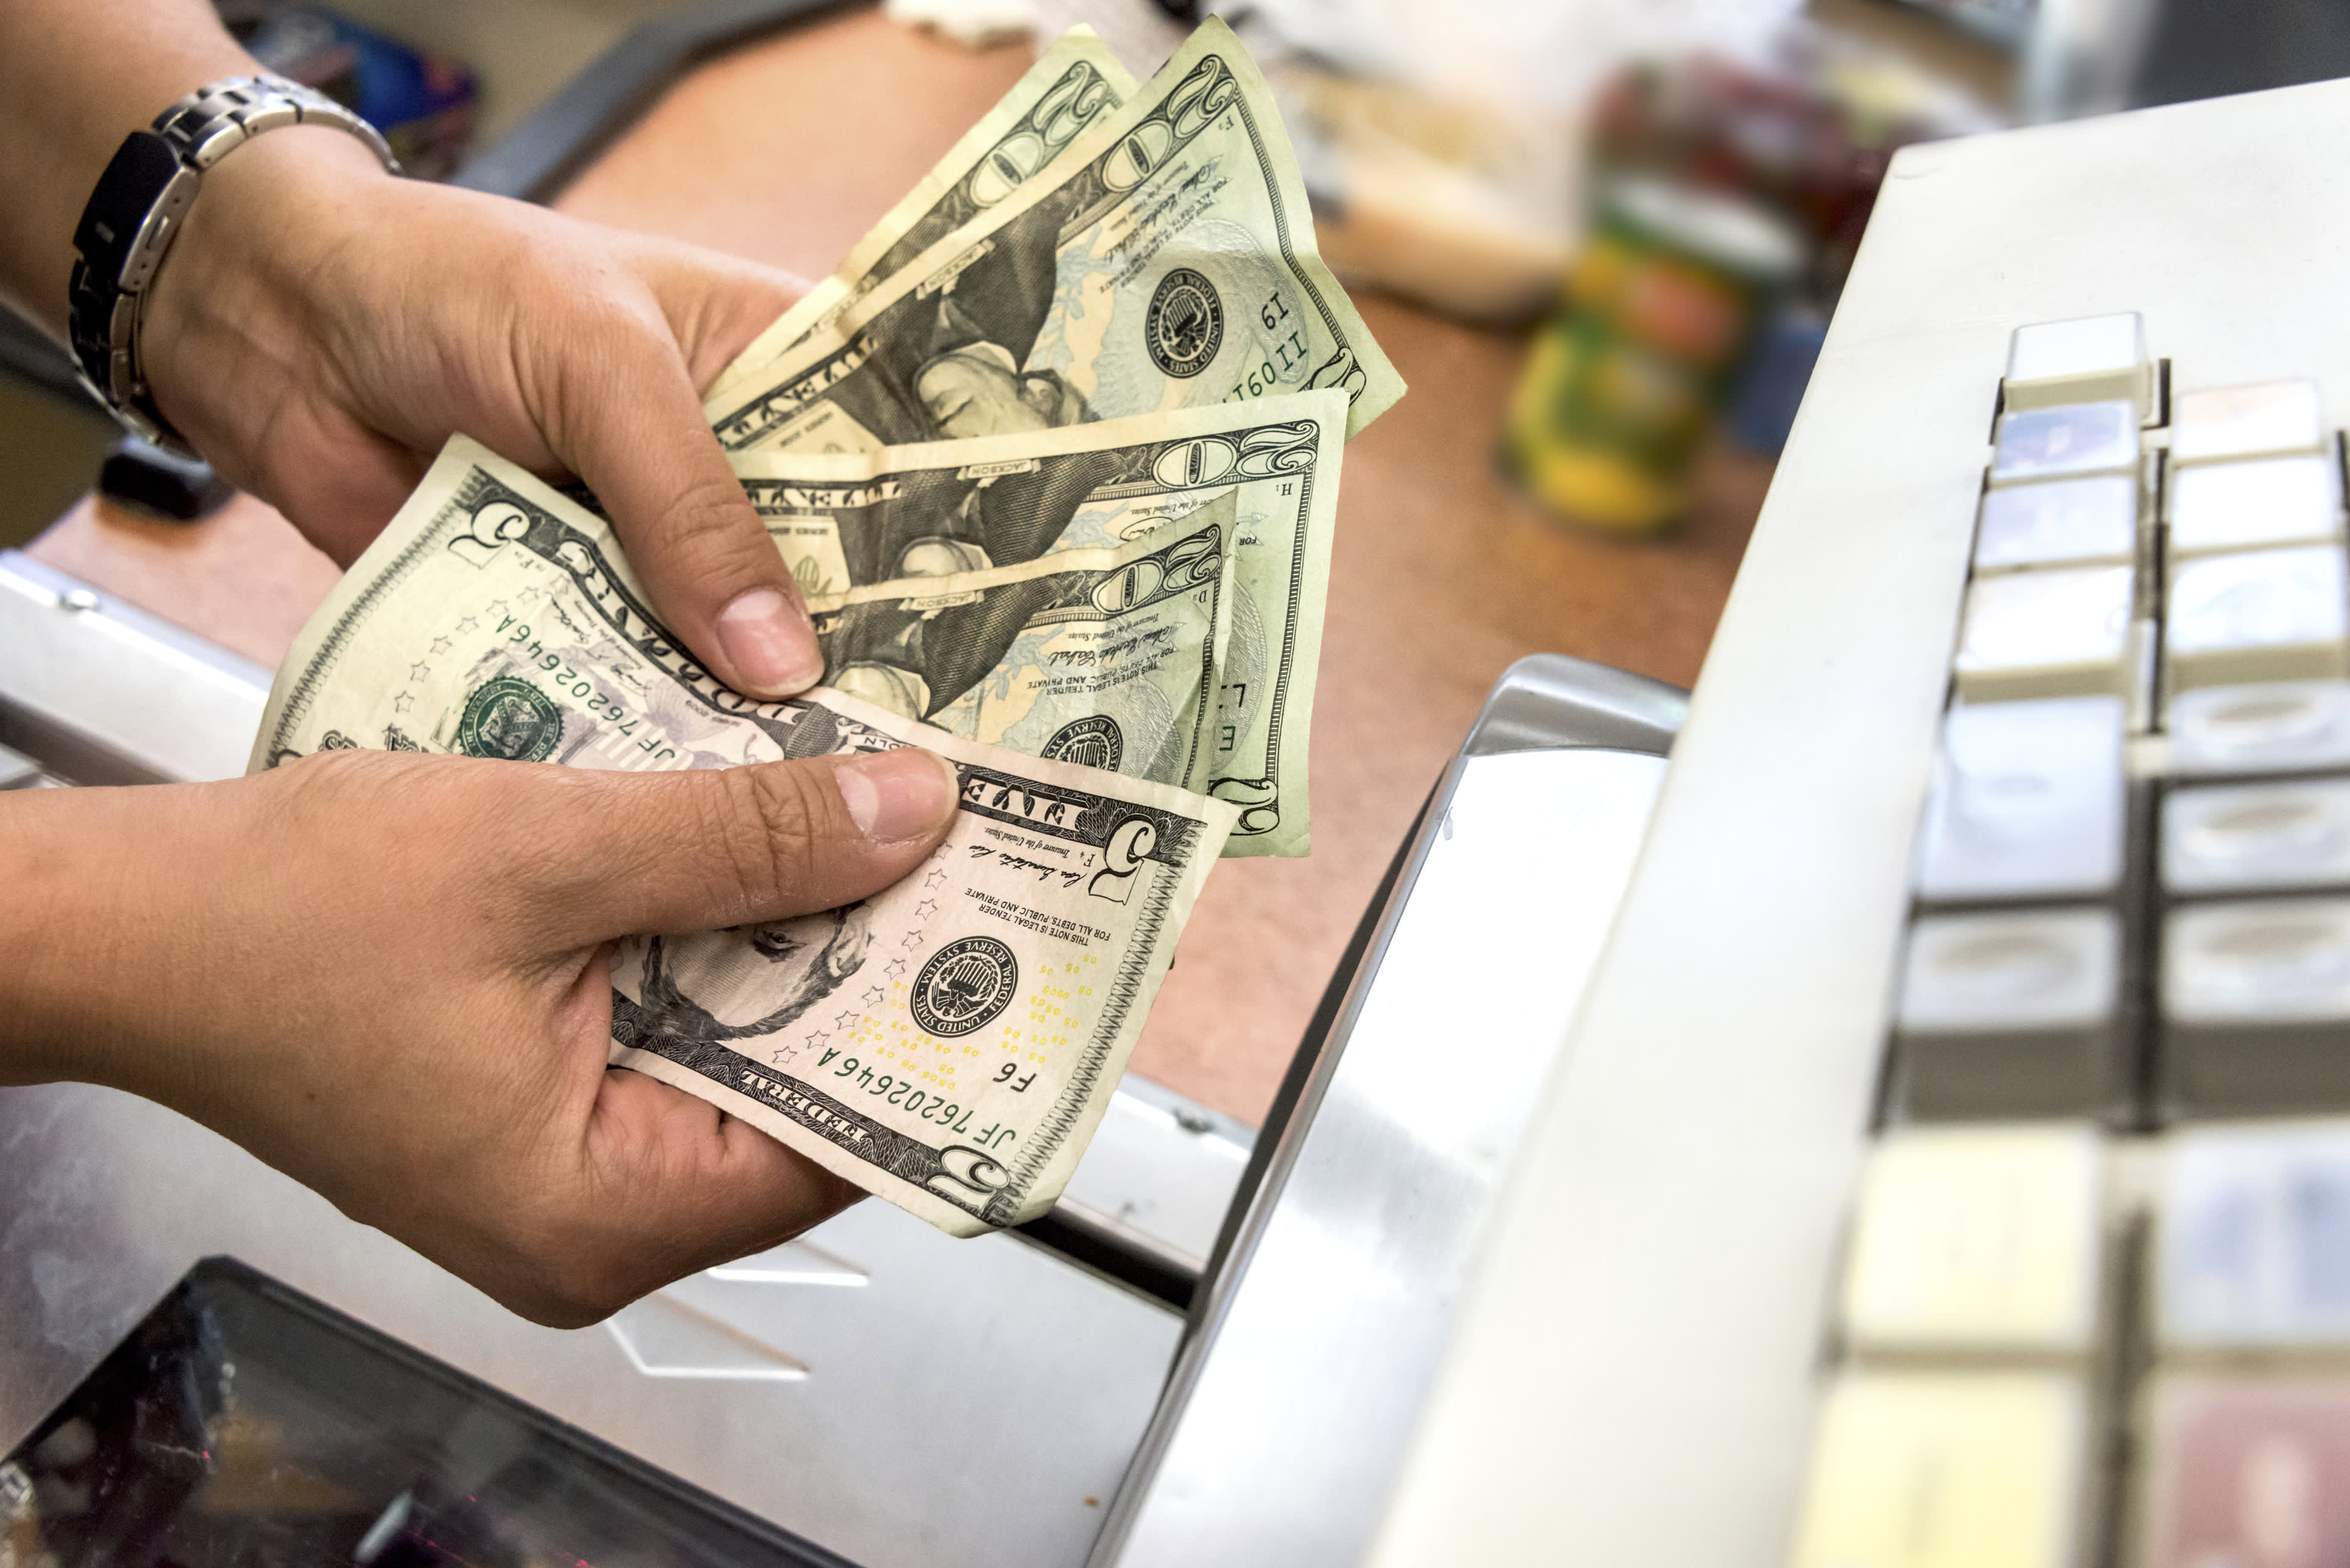 Cash-only business owners risk $100 billion mistake